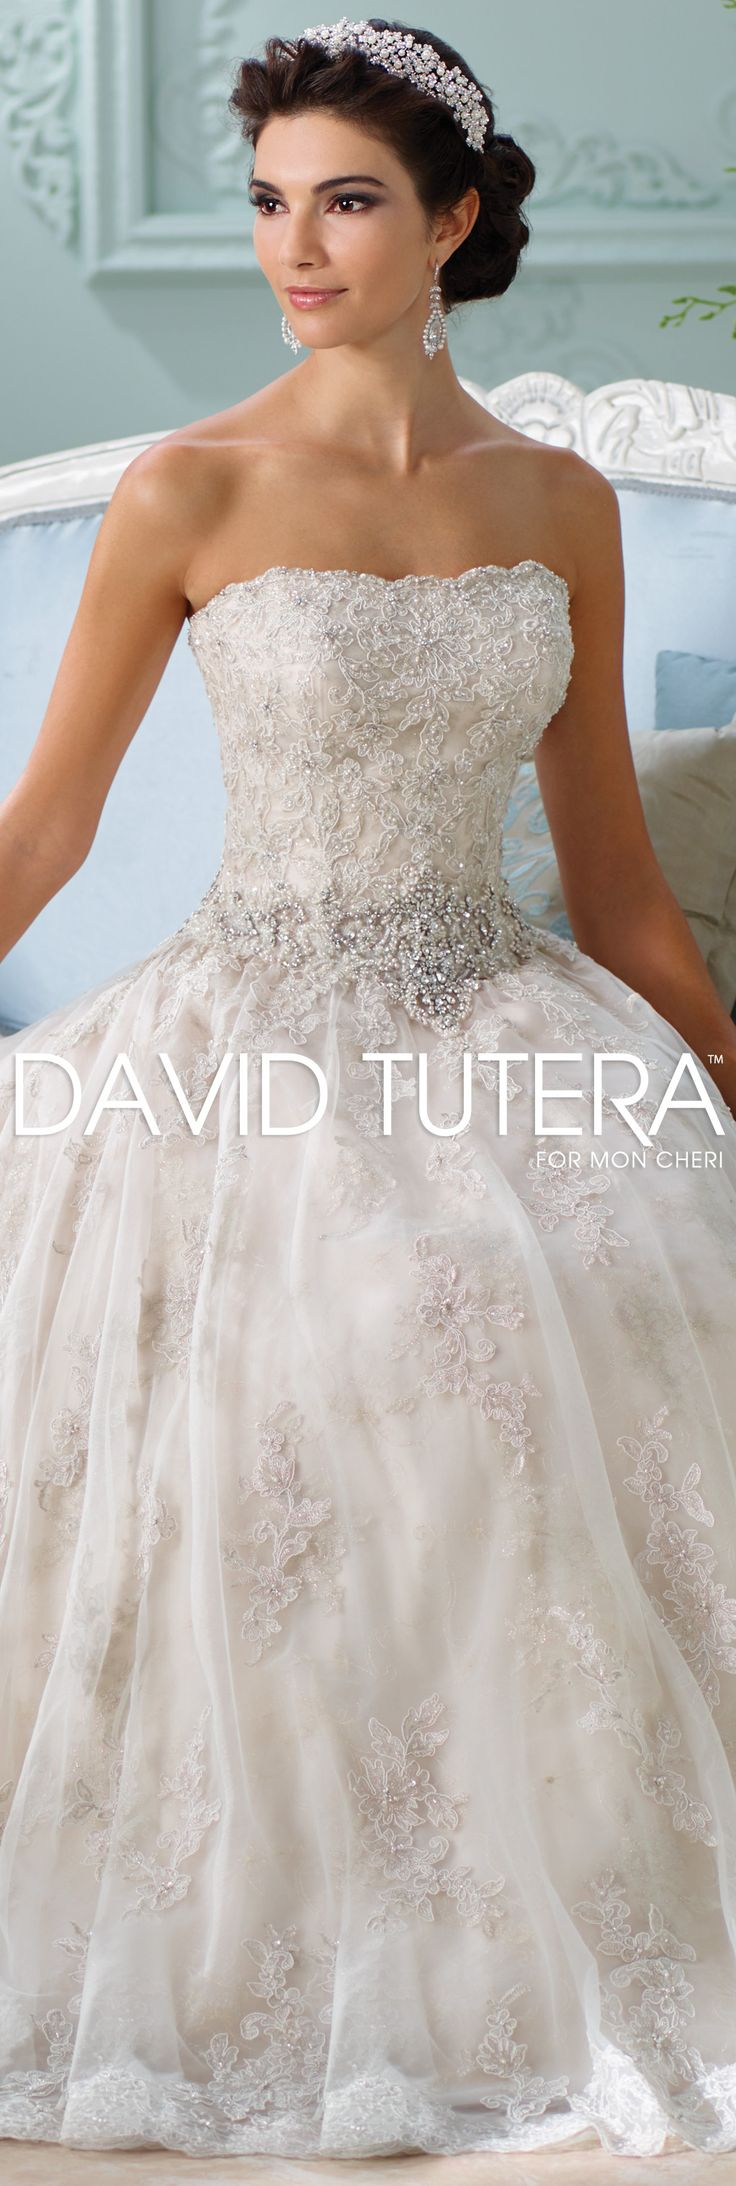 Best 25 david tutera ideas on pinterest sleeved wedding gowns the david tutera for mon cheri spring 2016 wedding gown collection style no 116230 junglespirit Choice Image